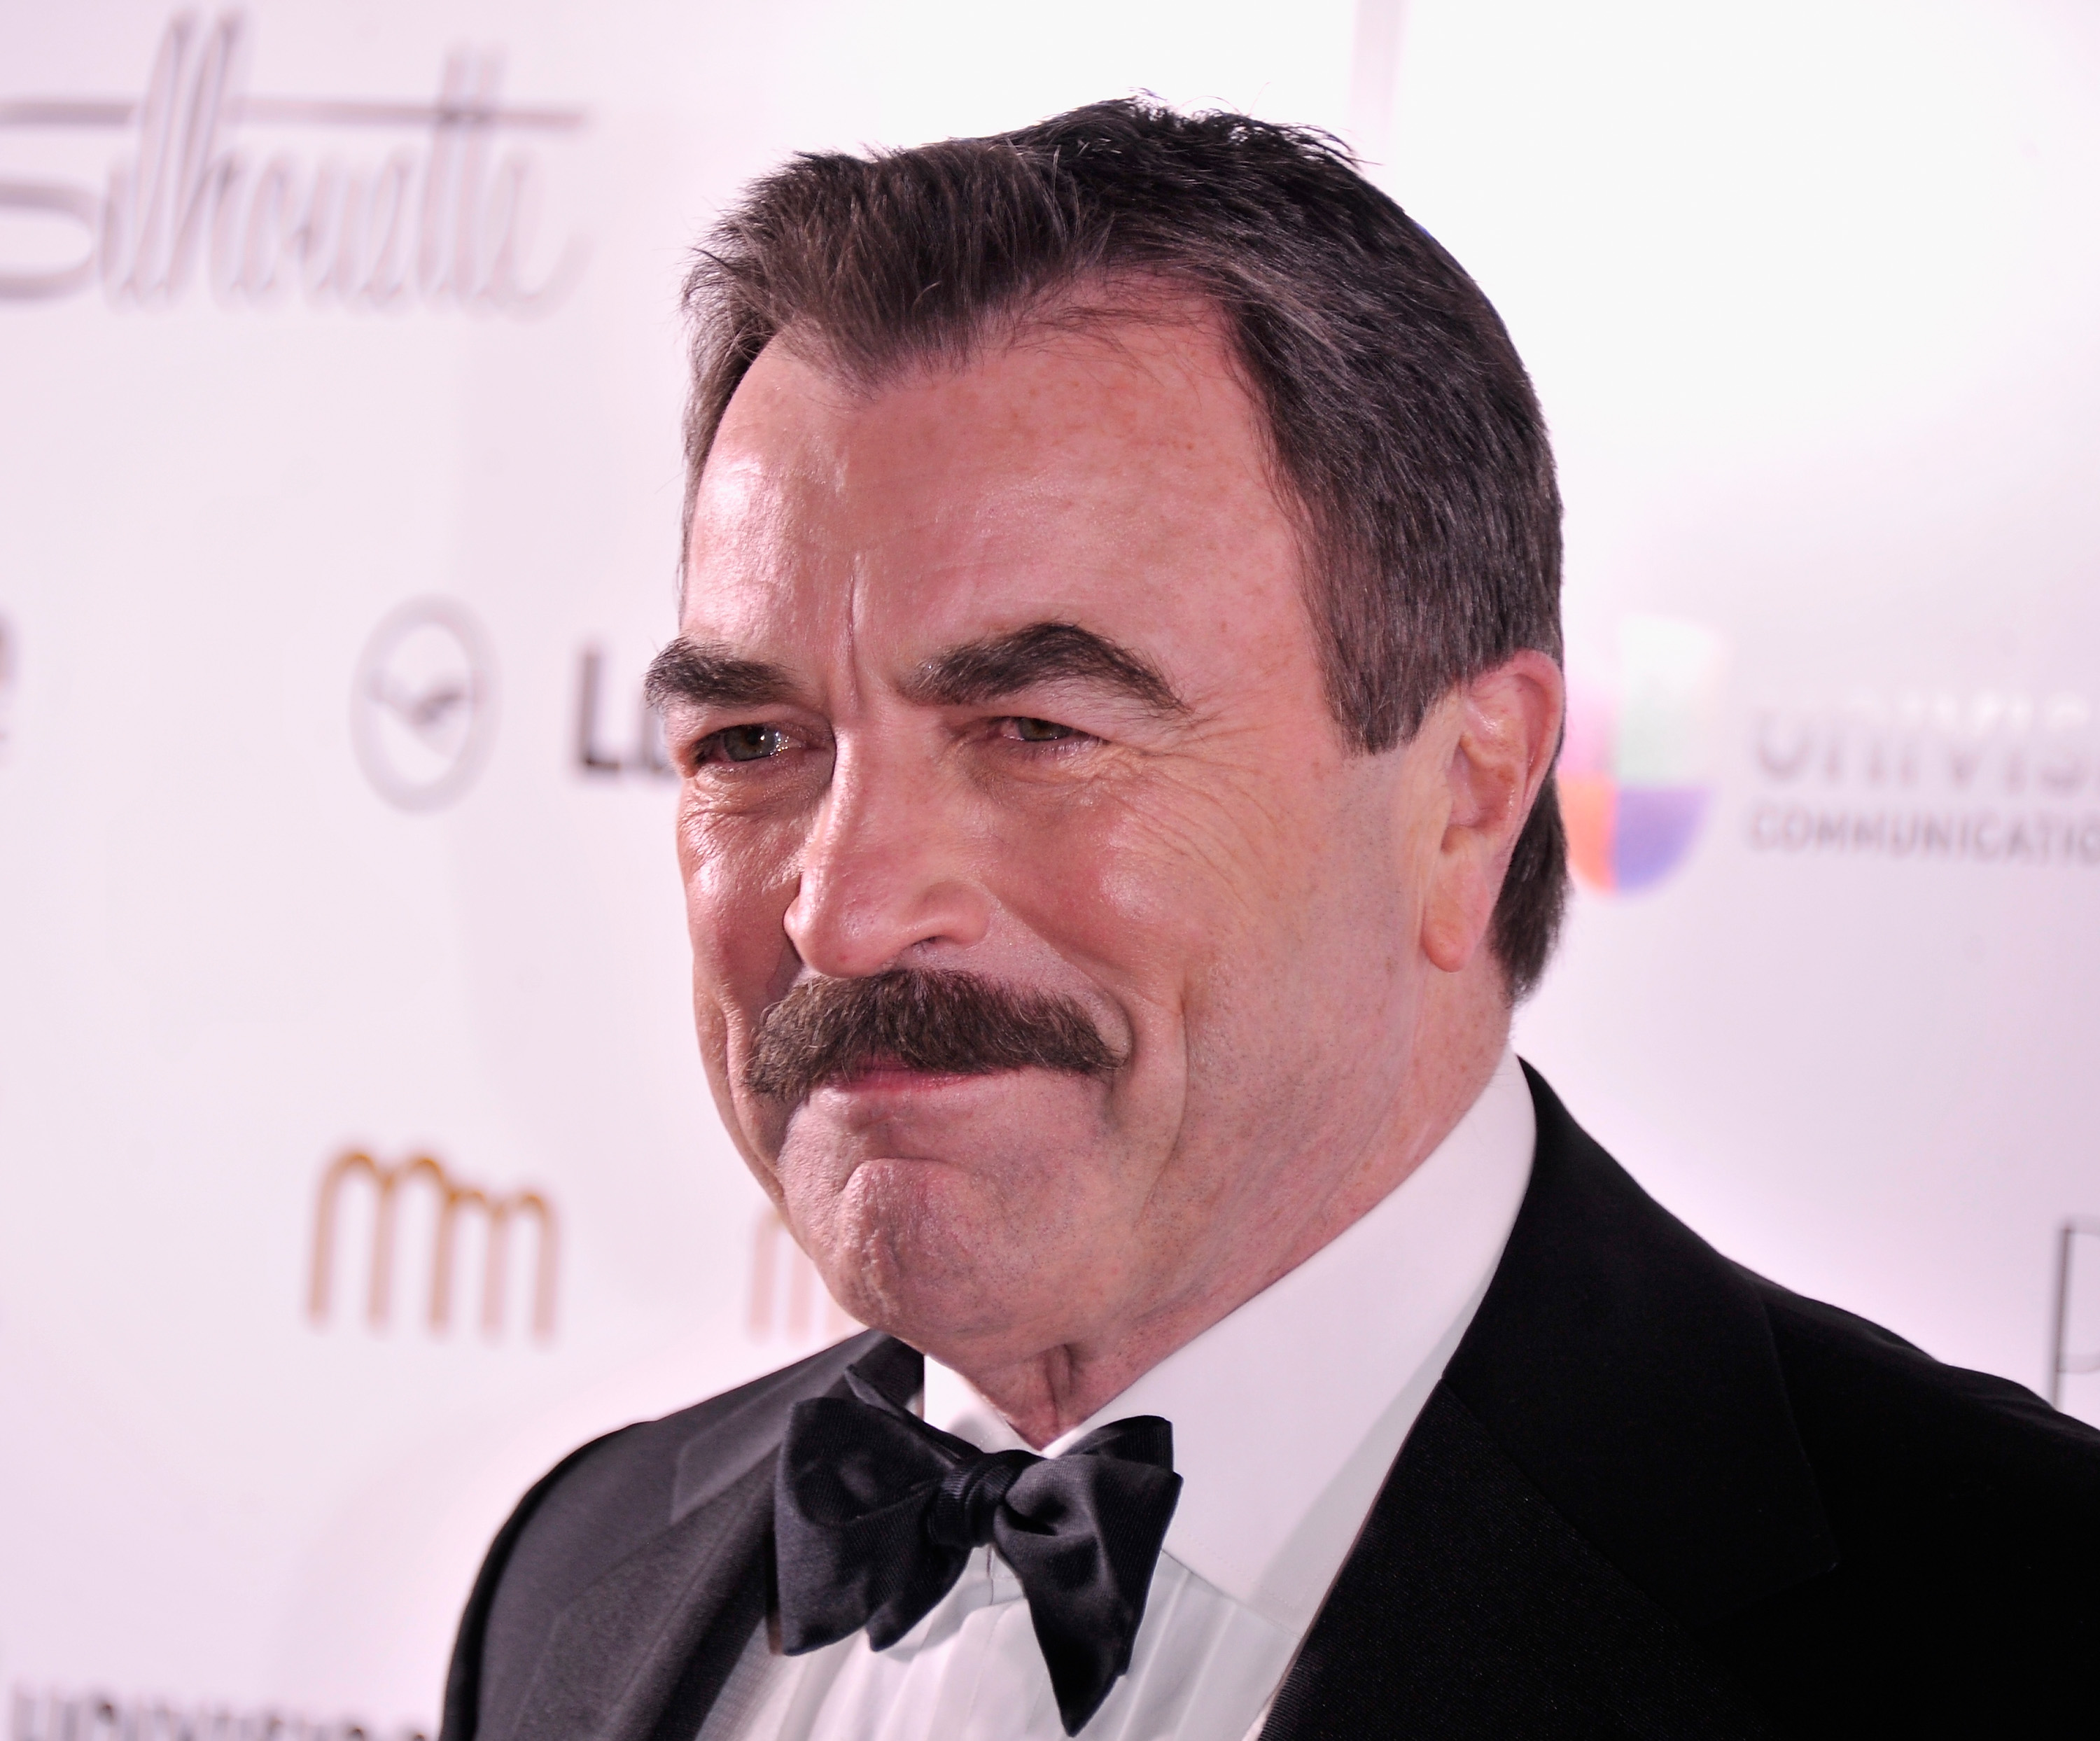 Actor Tom Selleck attends the PowerWomen 2013 awards on November 14, 2013 in New York City.